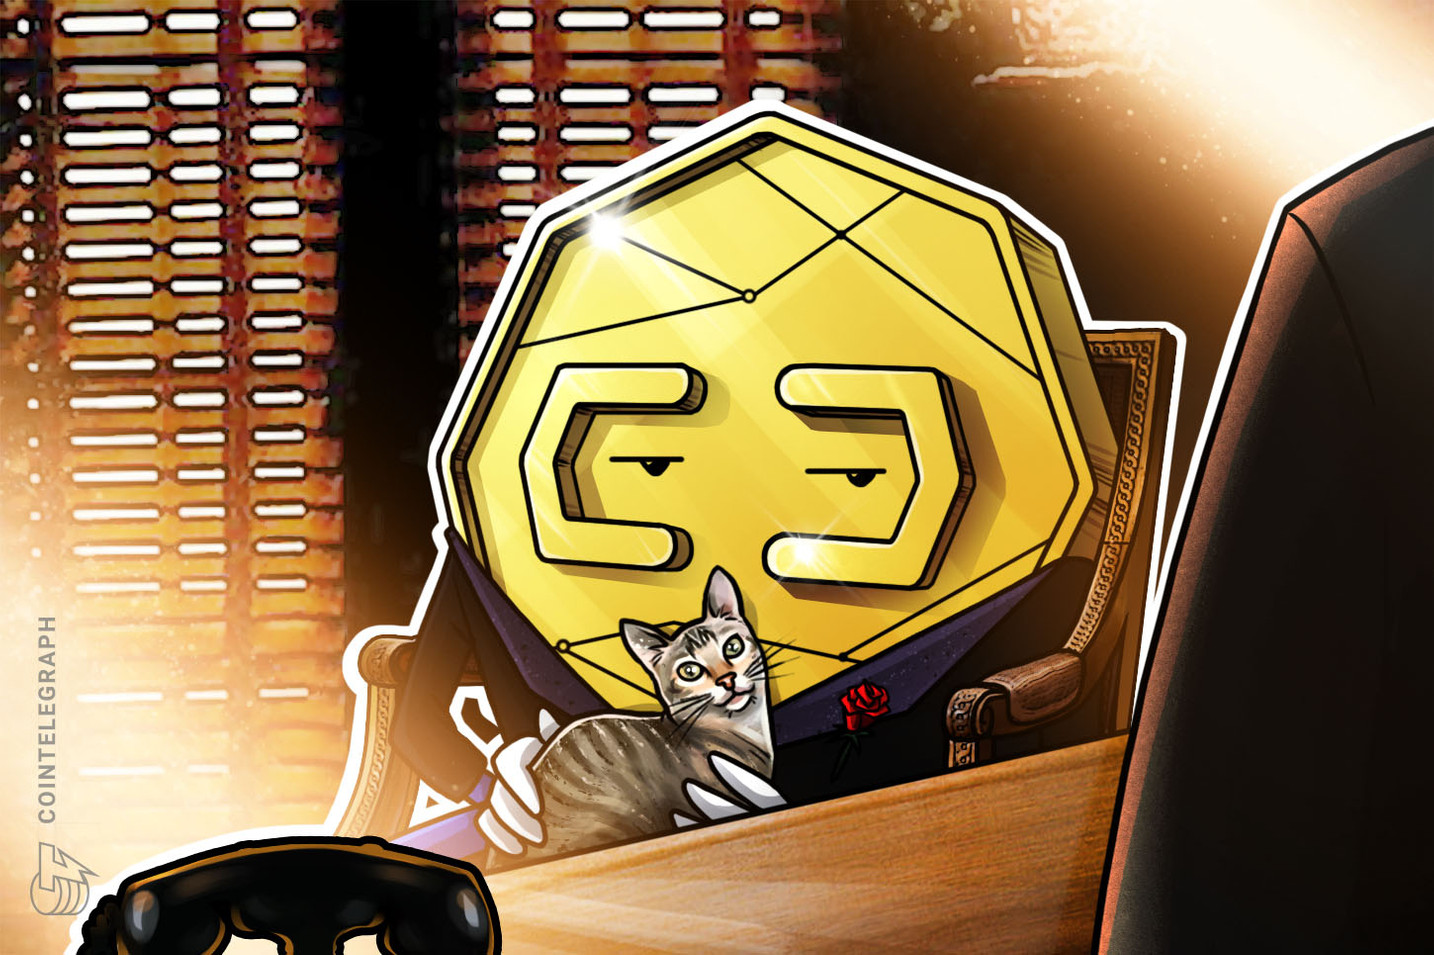 Indian Crypto Exchange Coindelta Shutters Services, Citing Adverse Regulatory Conditions